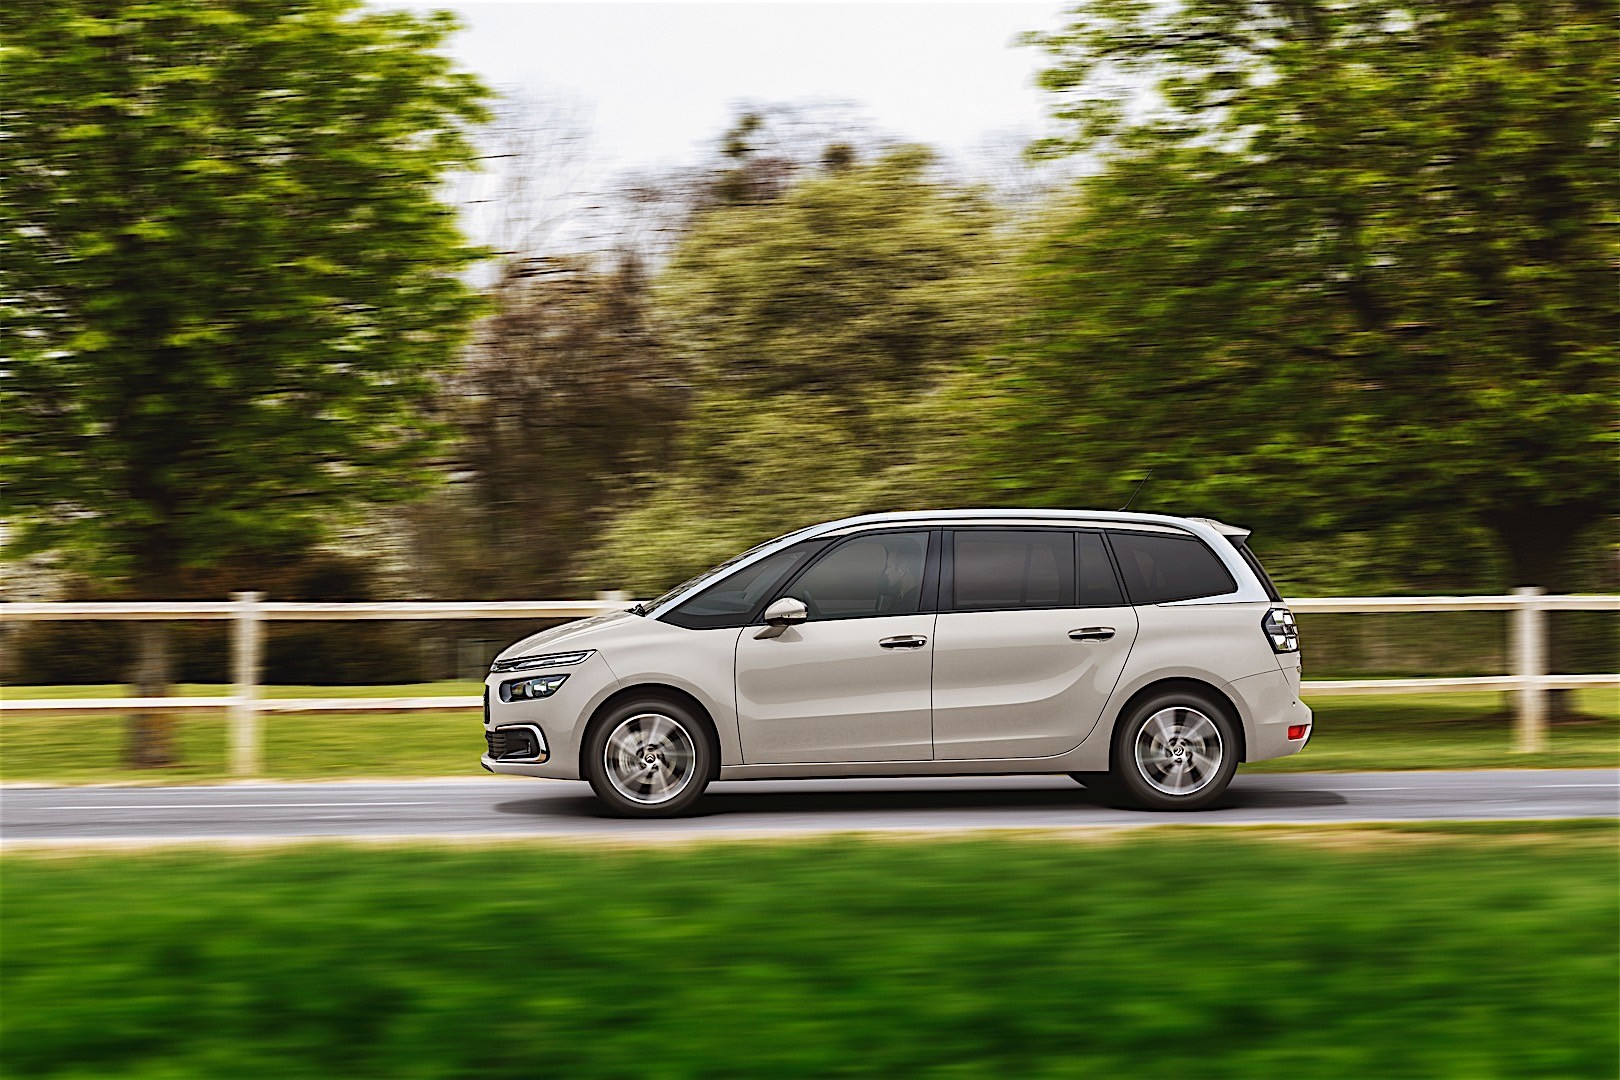 citroen grand c4 picasso 2016 autoevolution. Black Bedroom Furniture Sets. Home Design Ideas